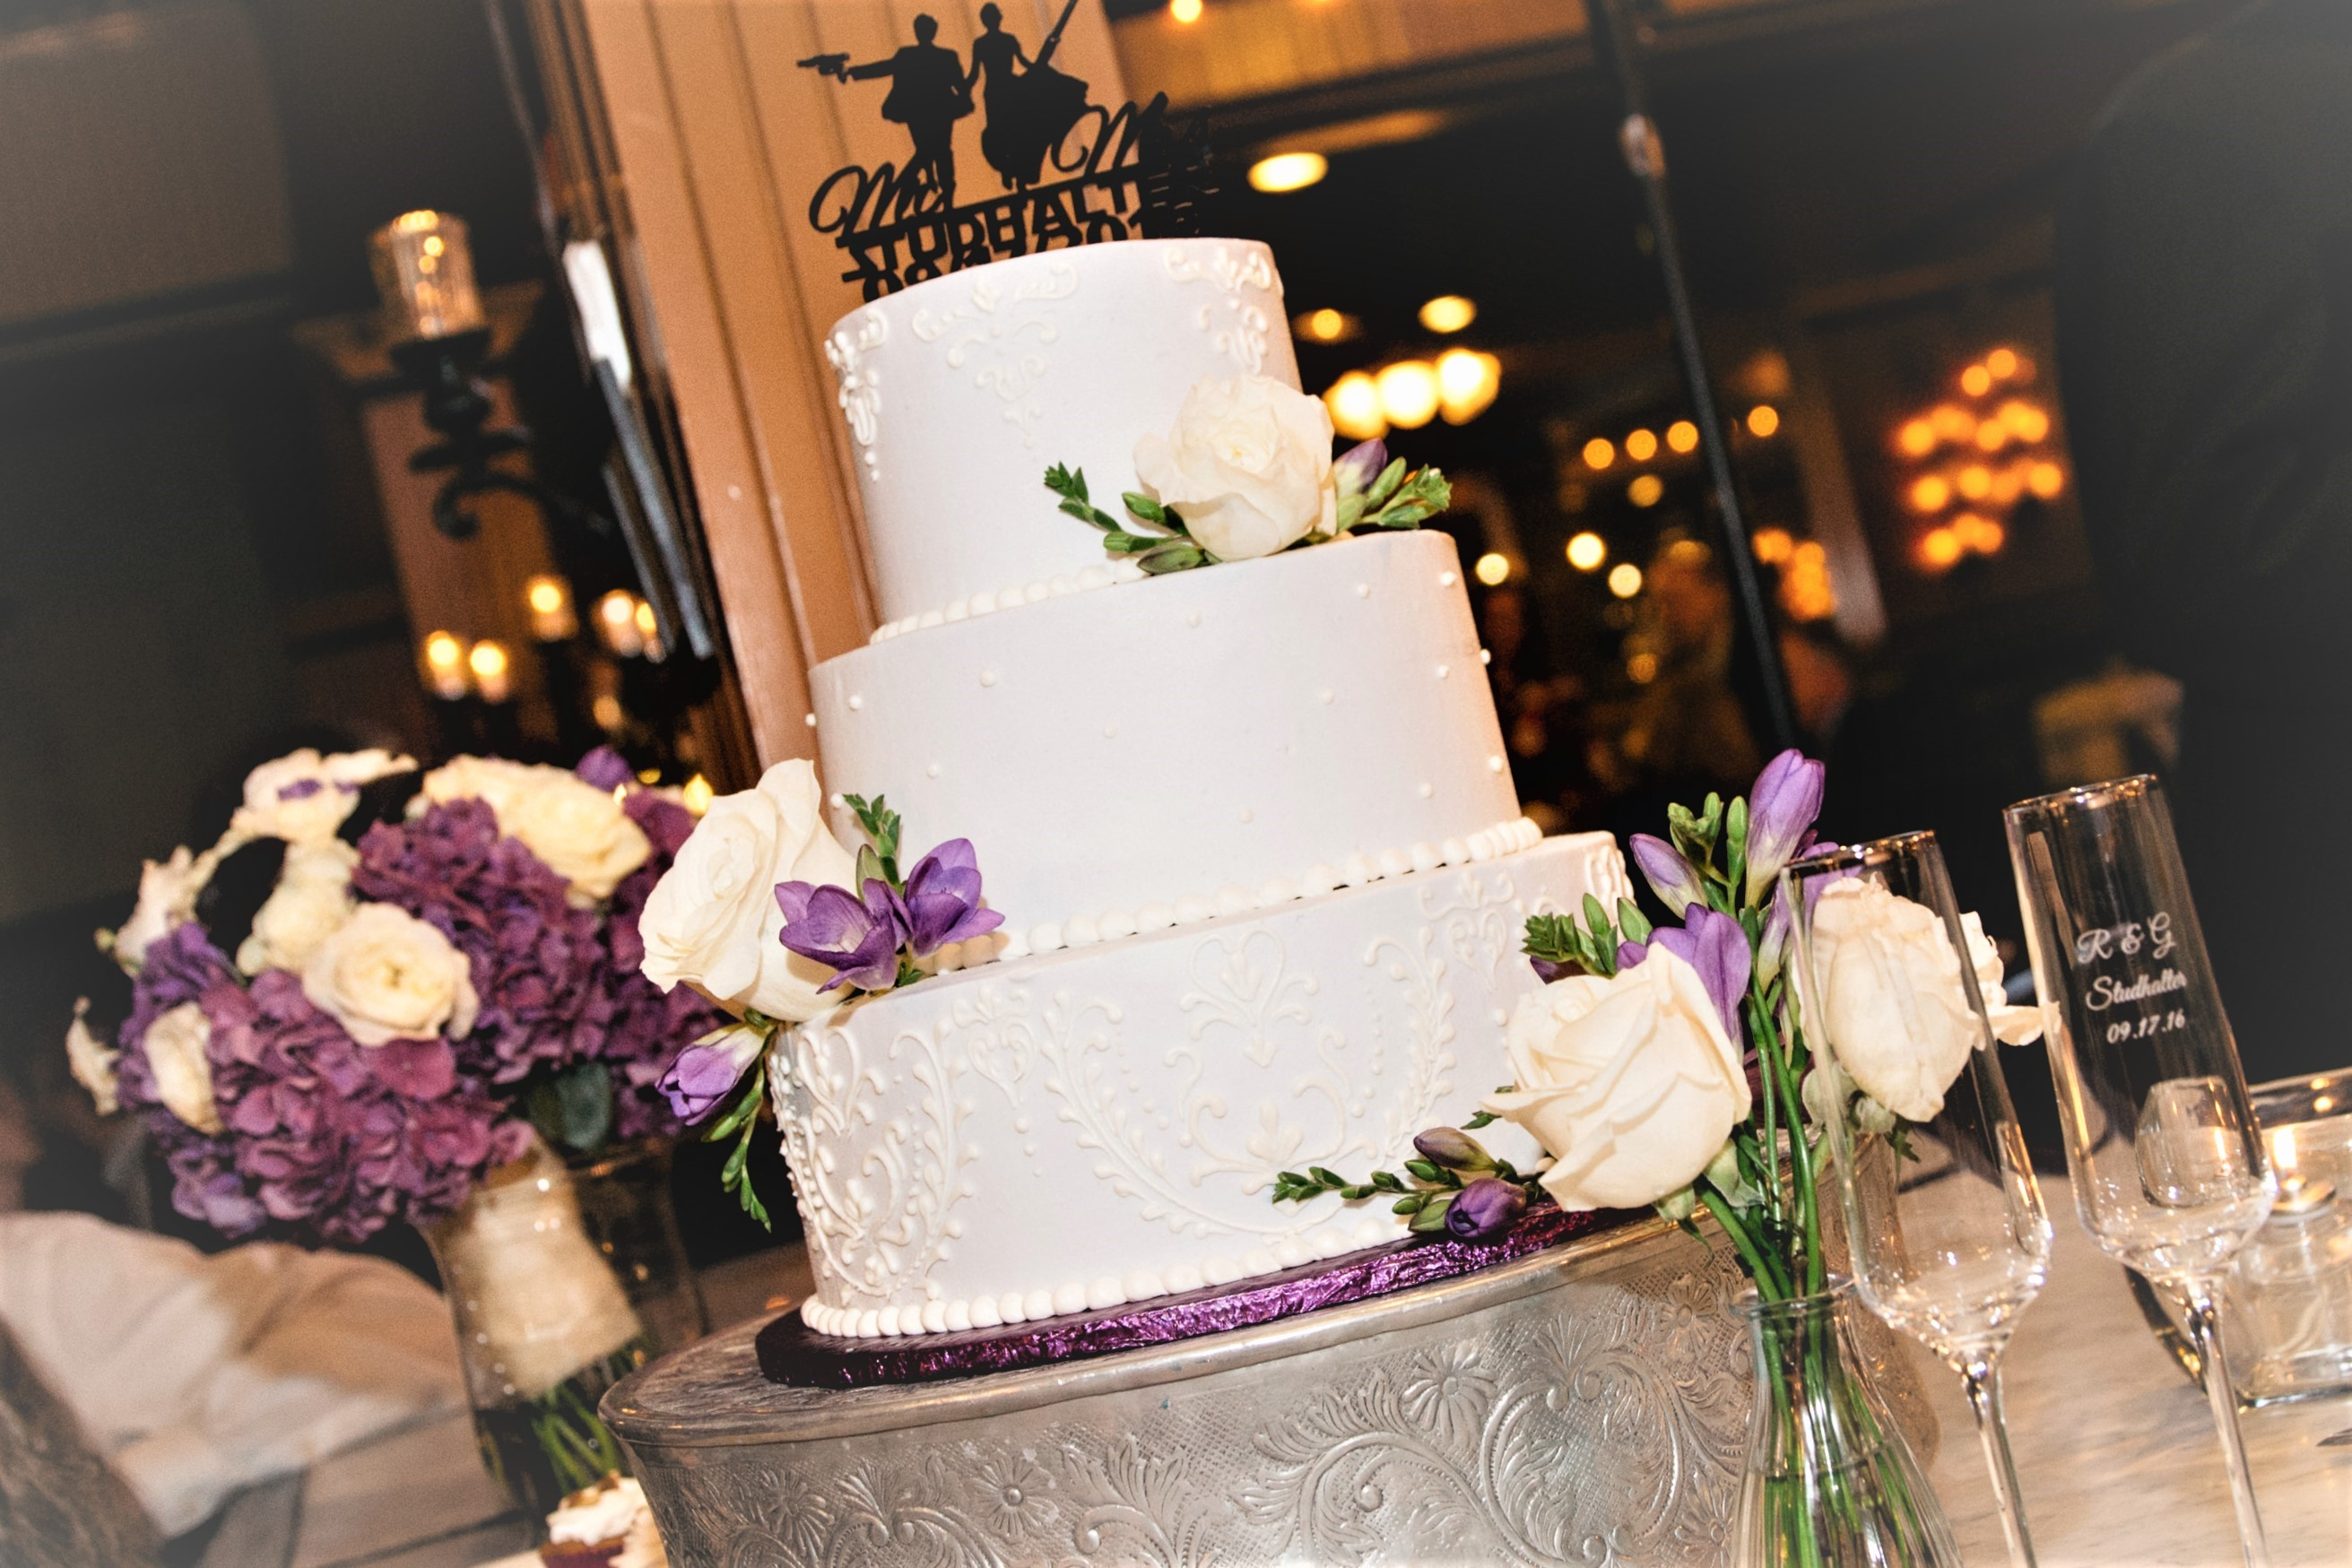 Three Tiered Lavender and White Cake